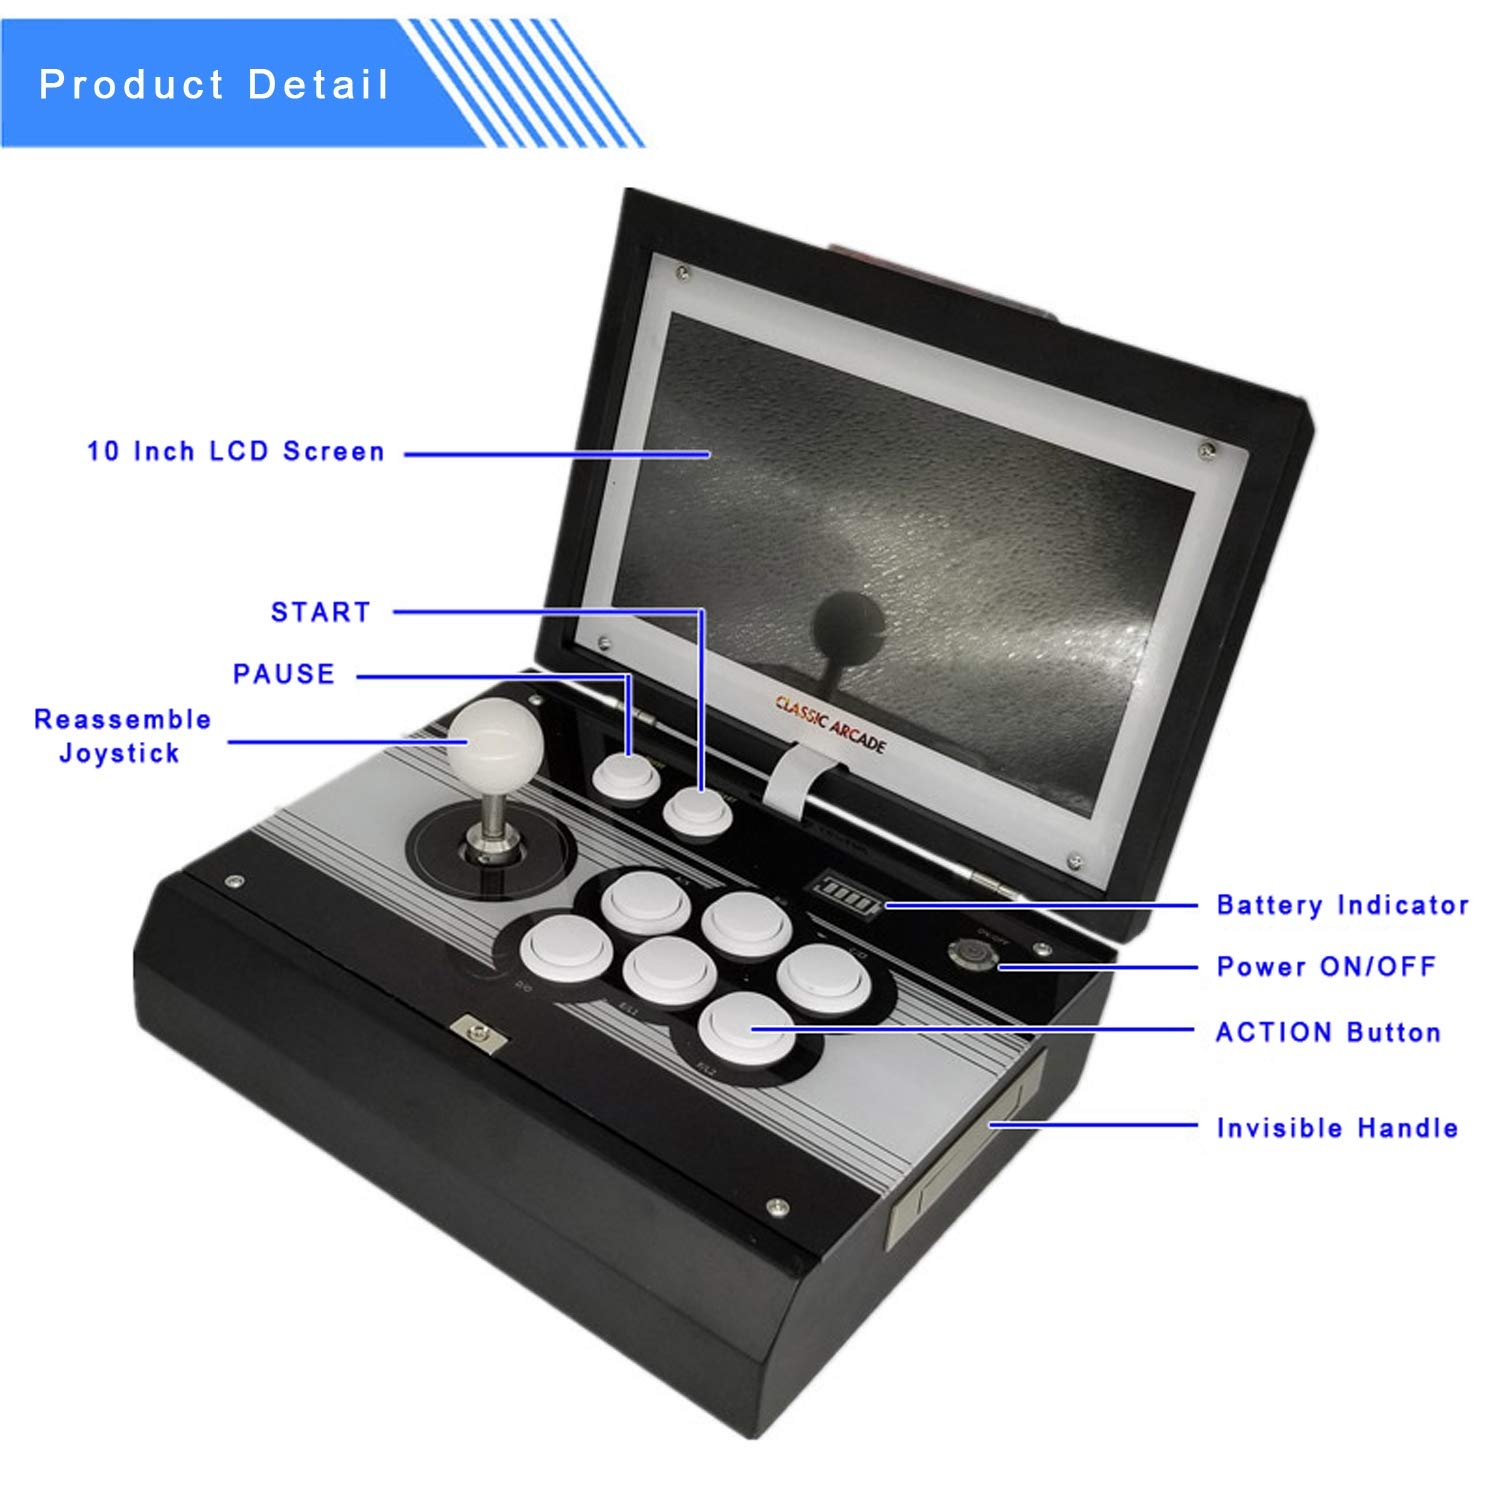 10.1 inch Portable Metal Casing Pandora 9 Arcade Video Game Console 1500 in 1 Retro Games Arcade 1280x720P HD Home Flip Single Player Game Machine by angkel (Image #3)